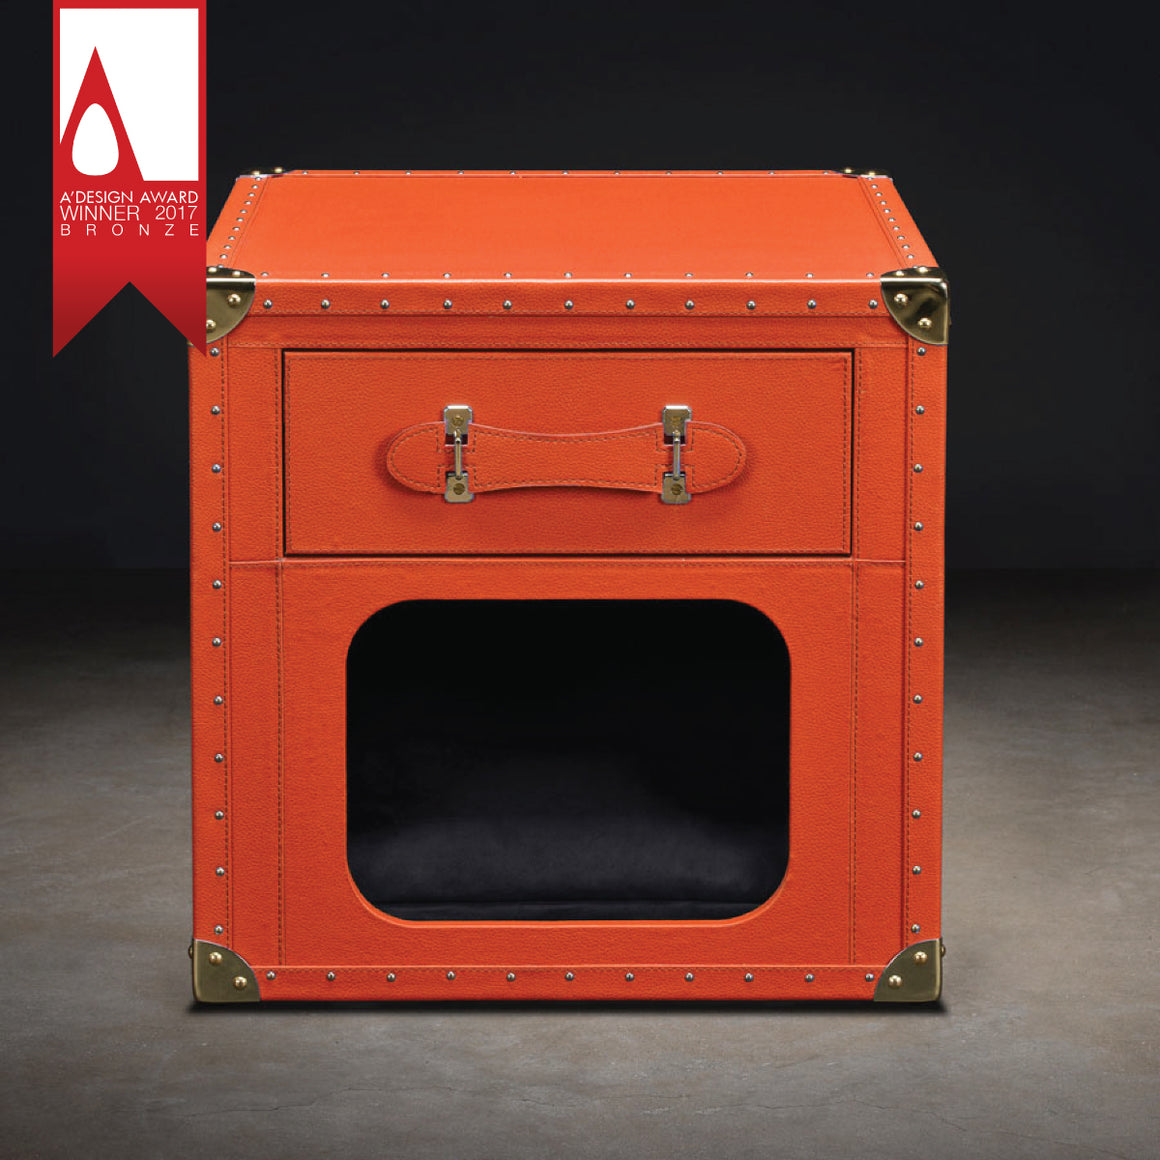 YORKSHIRE SIDE TABLE DOG HOUSE - Candy Apple Ltd